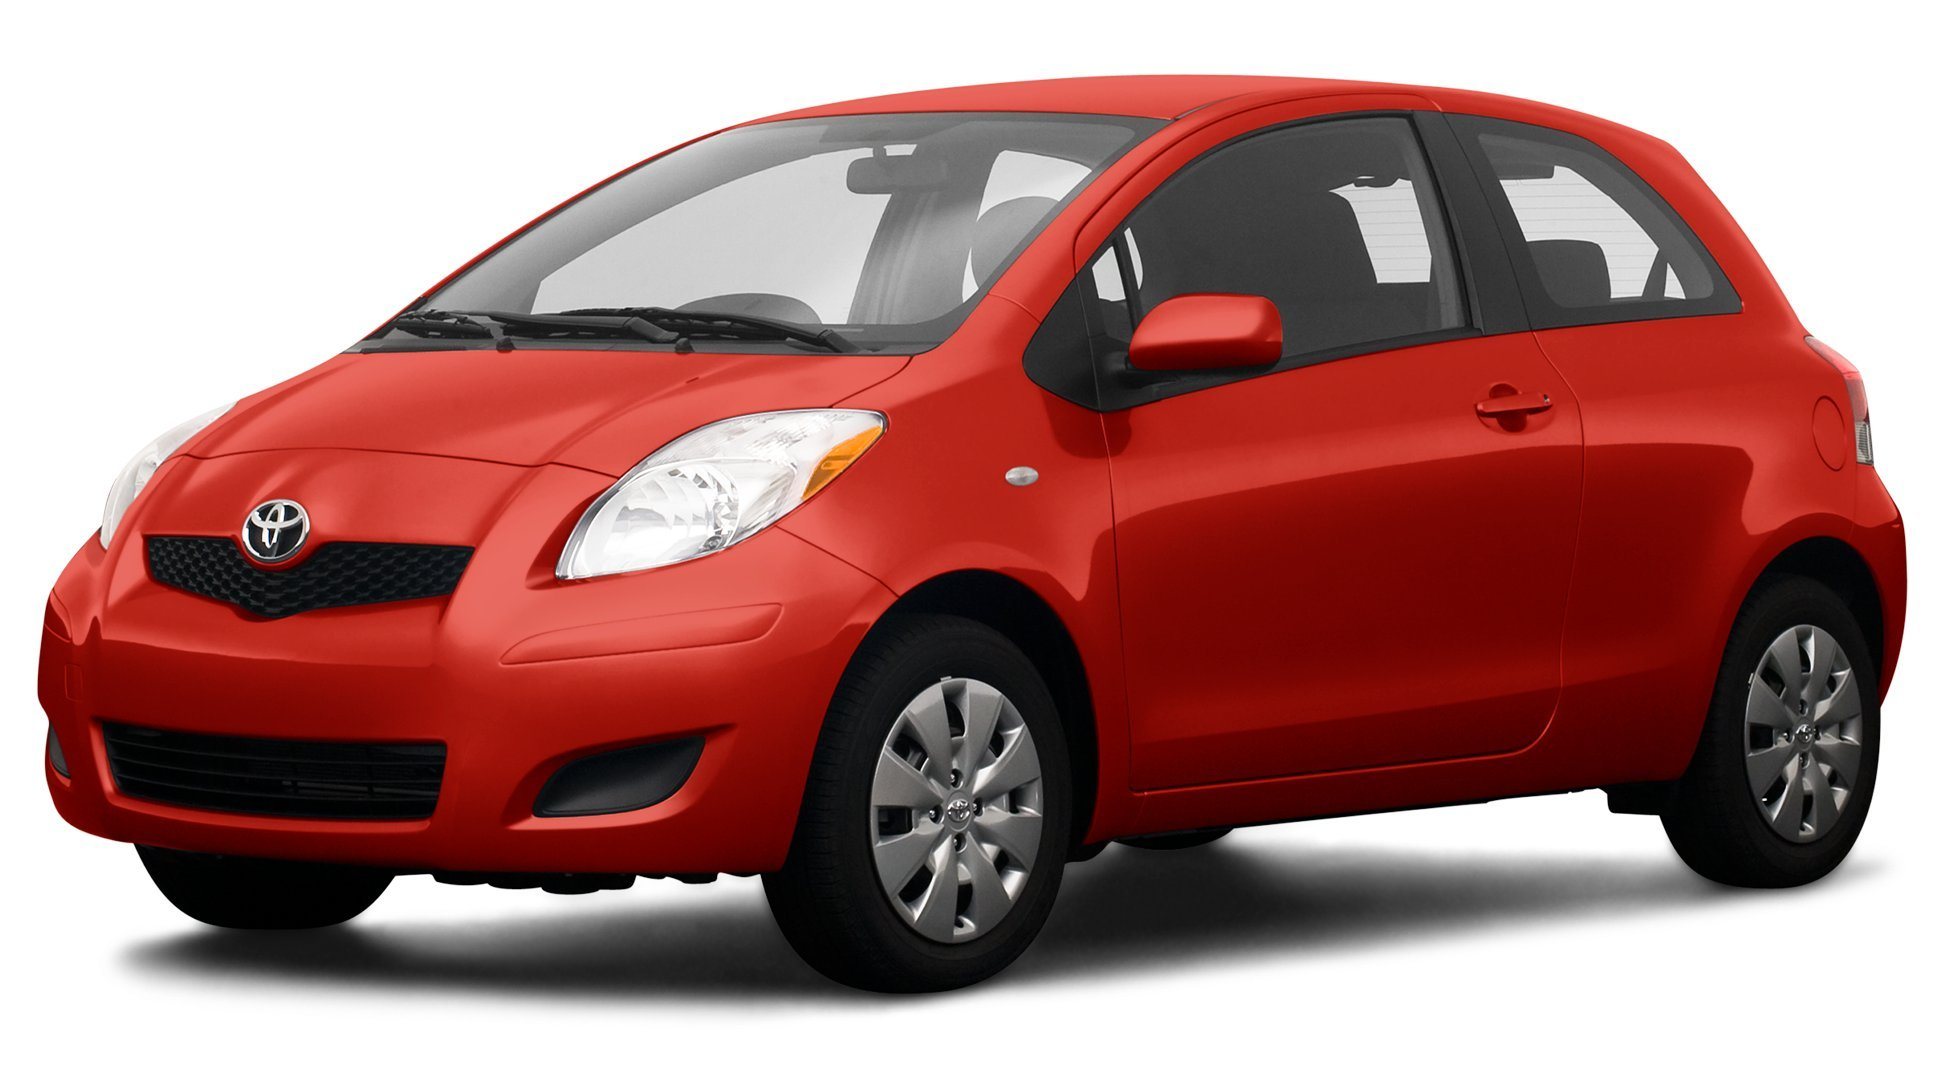 Amazon.com: 2009 Toyota Yaris Reviews, Images, And Specs